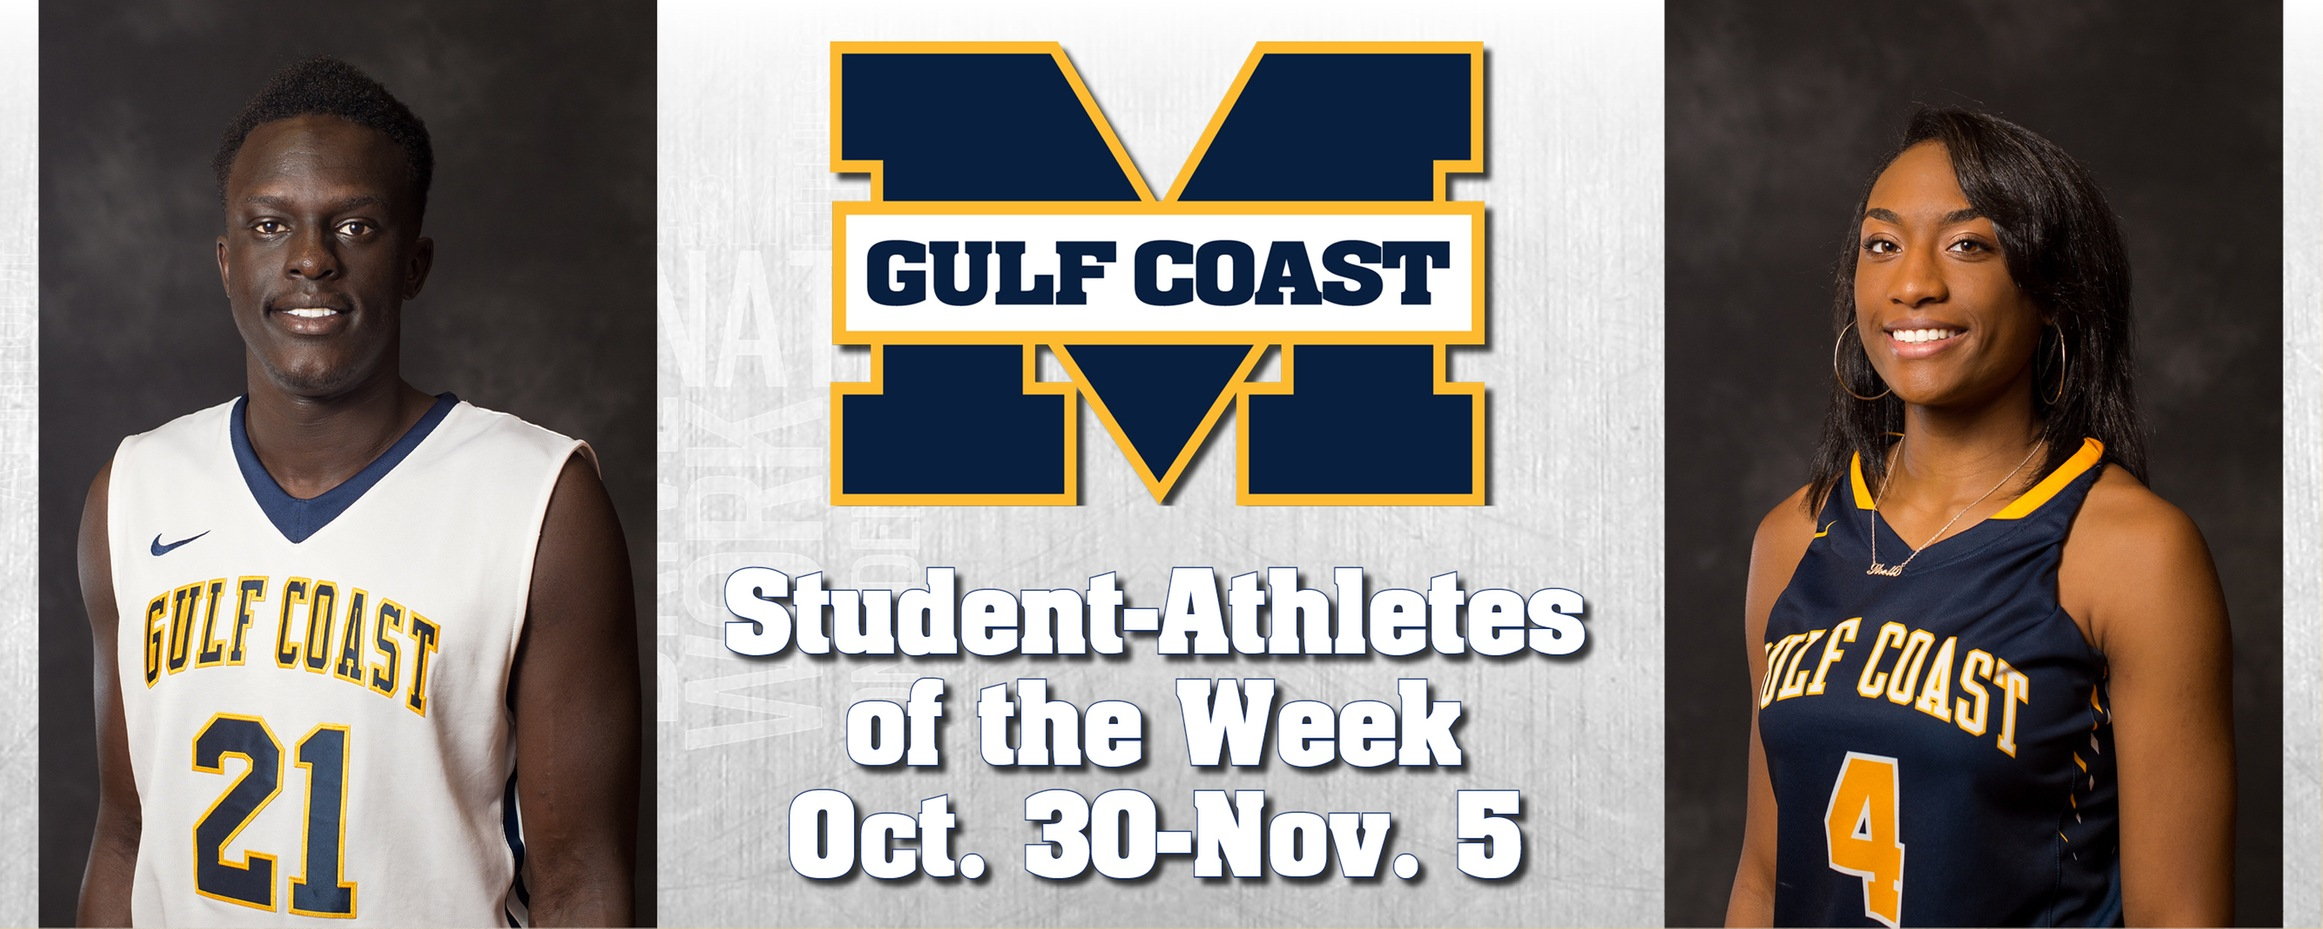 Chan, Thigpen named MGCCC Student-Athletes of the Week